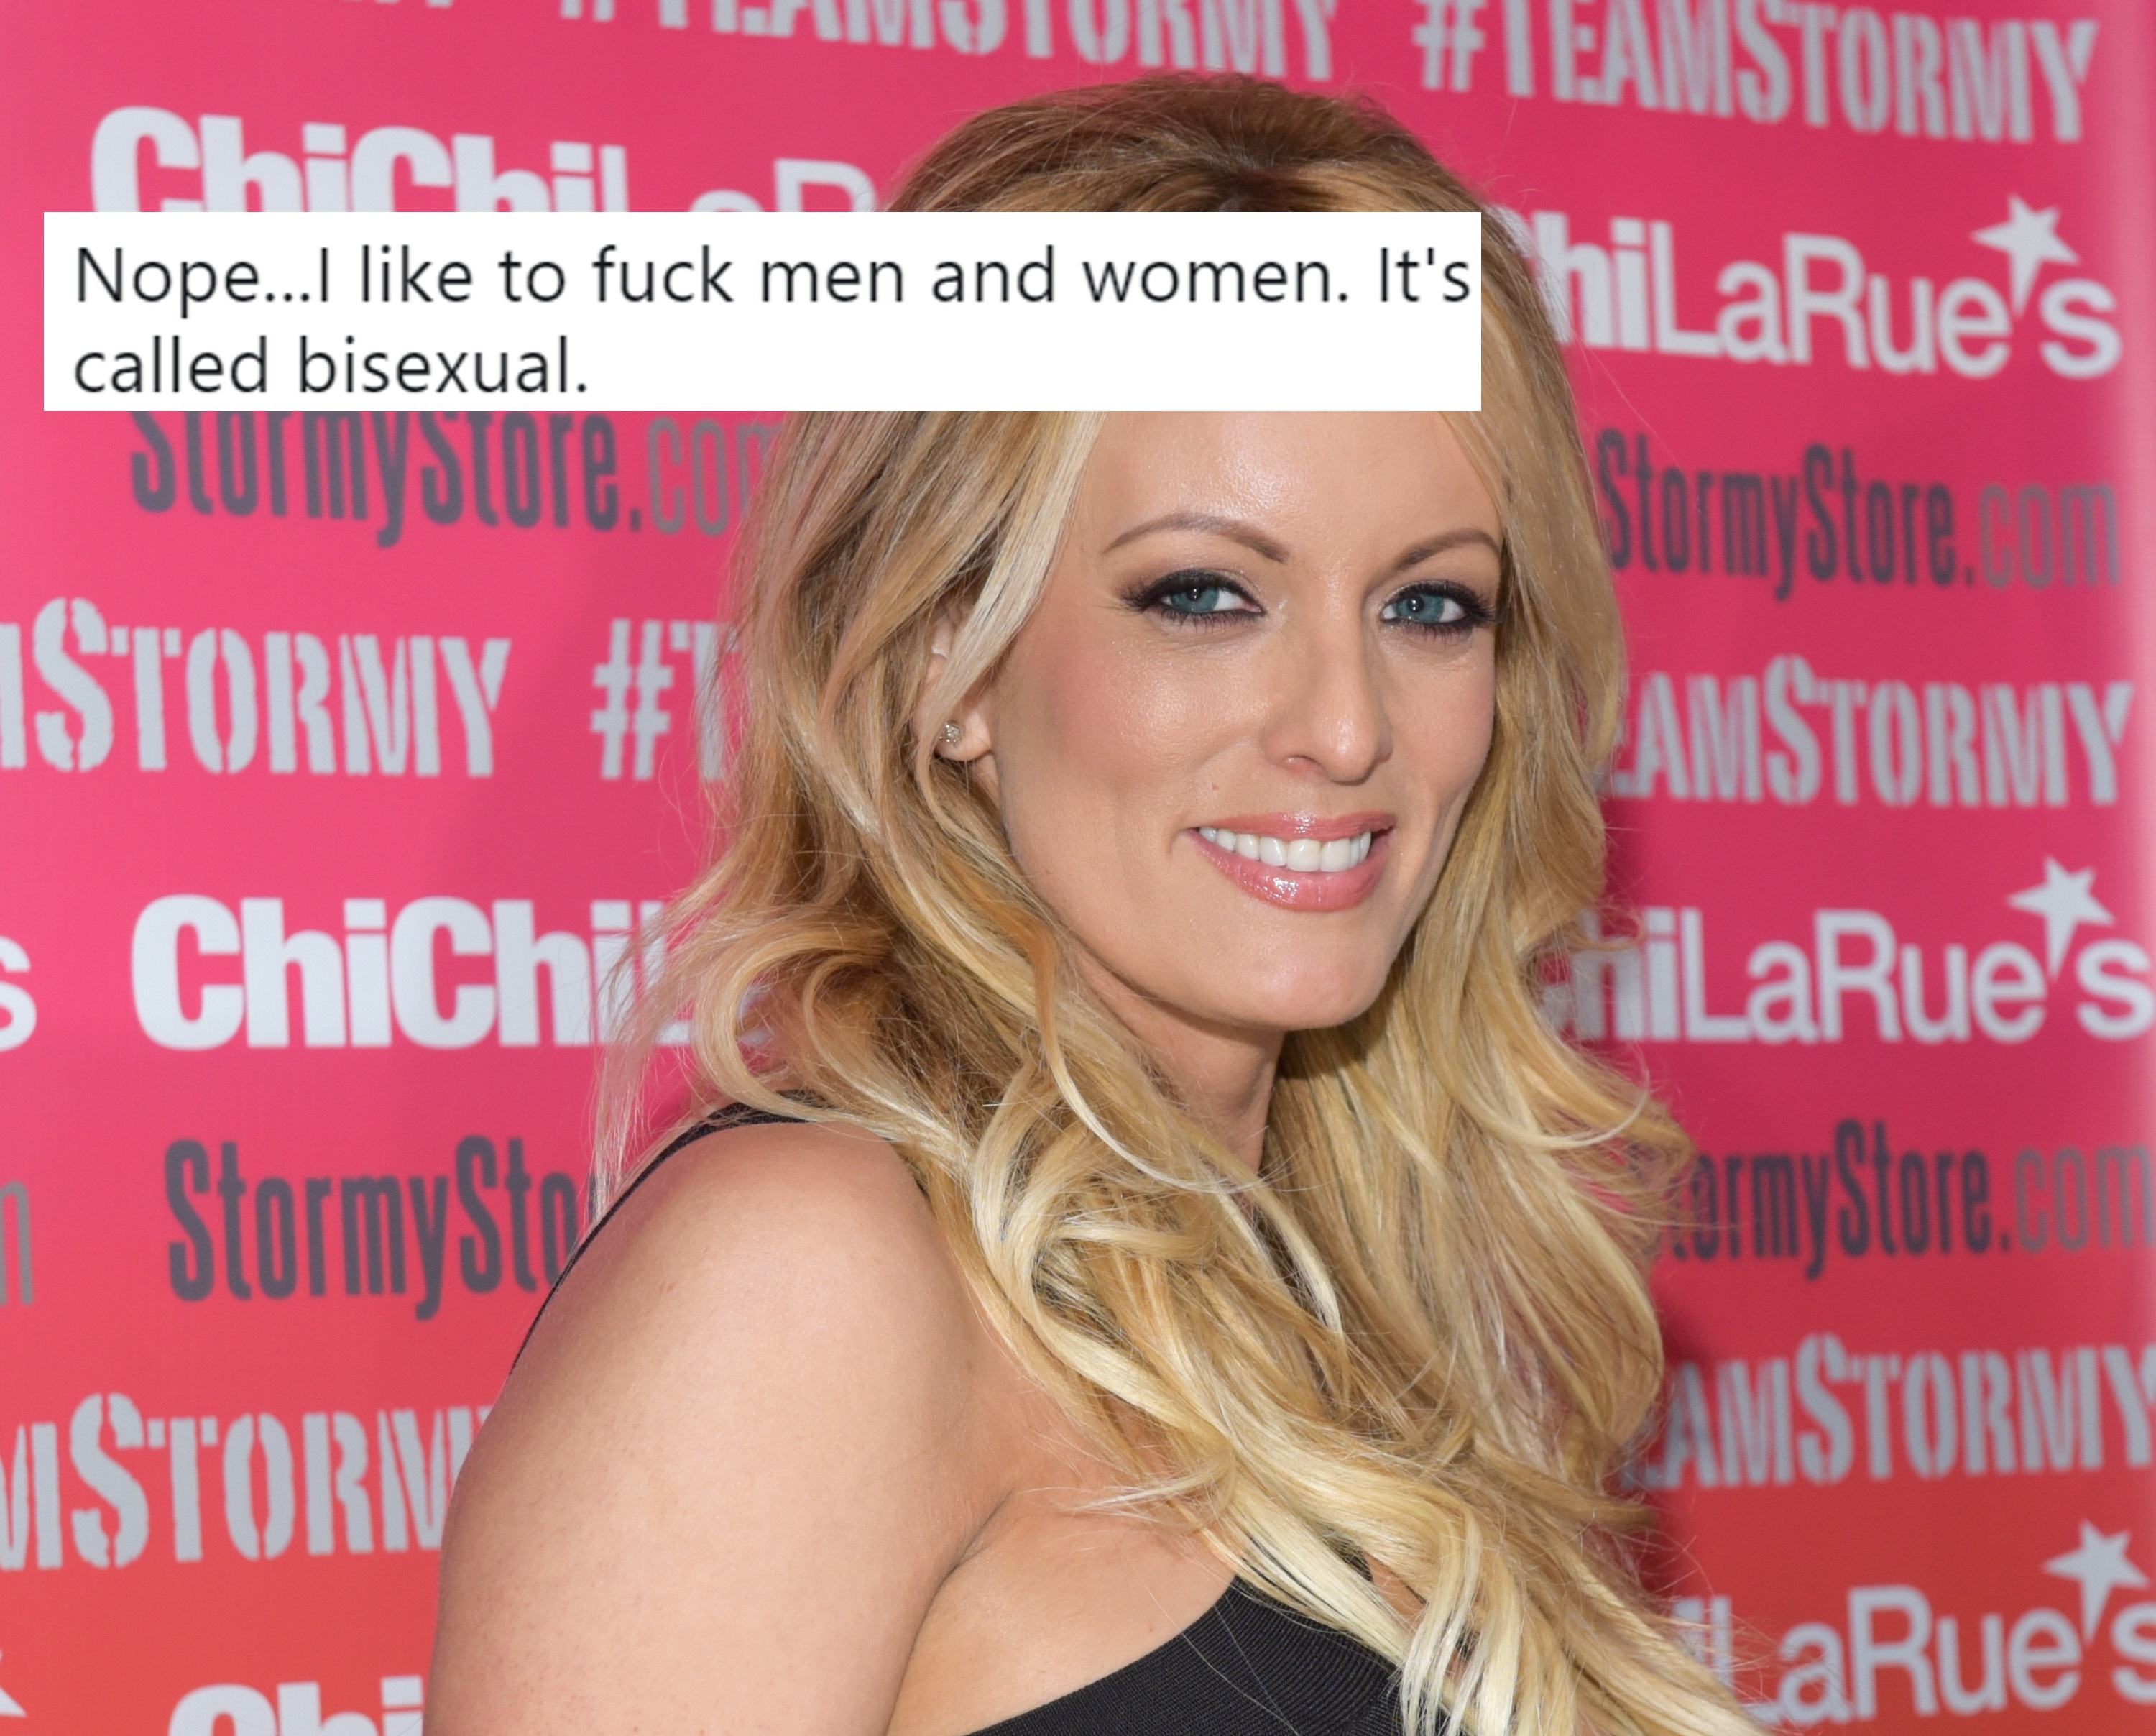 Porn star Stormy Daniels attends a fan meet and greet at Chi Chi LaRue's on May 23, 2018 in West Hollywood, California